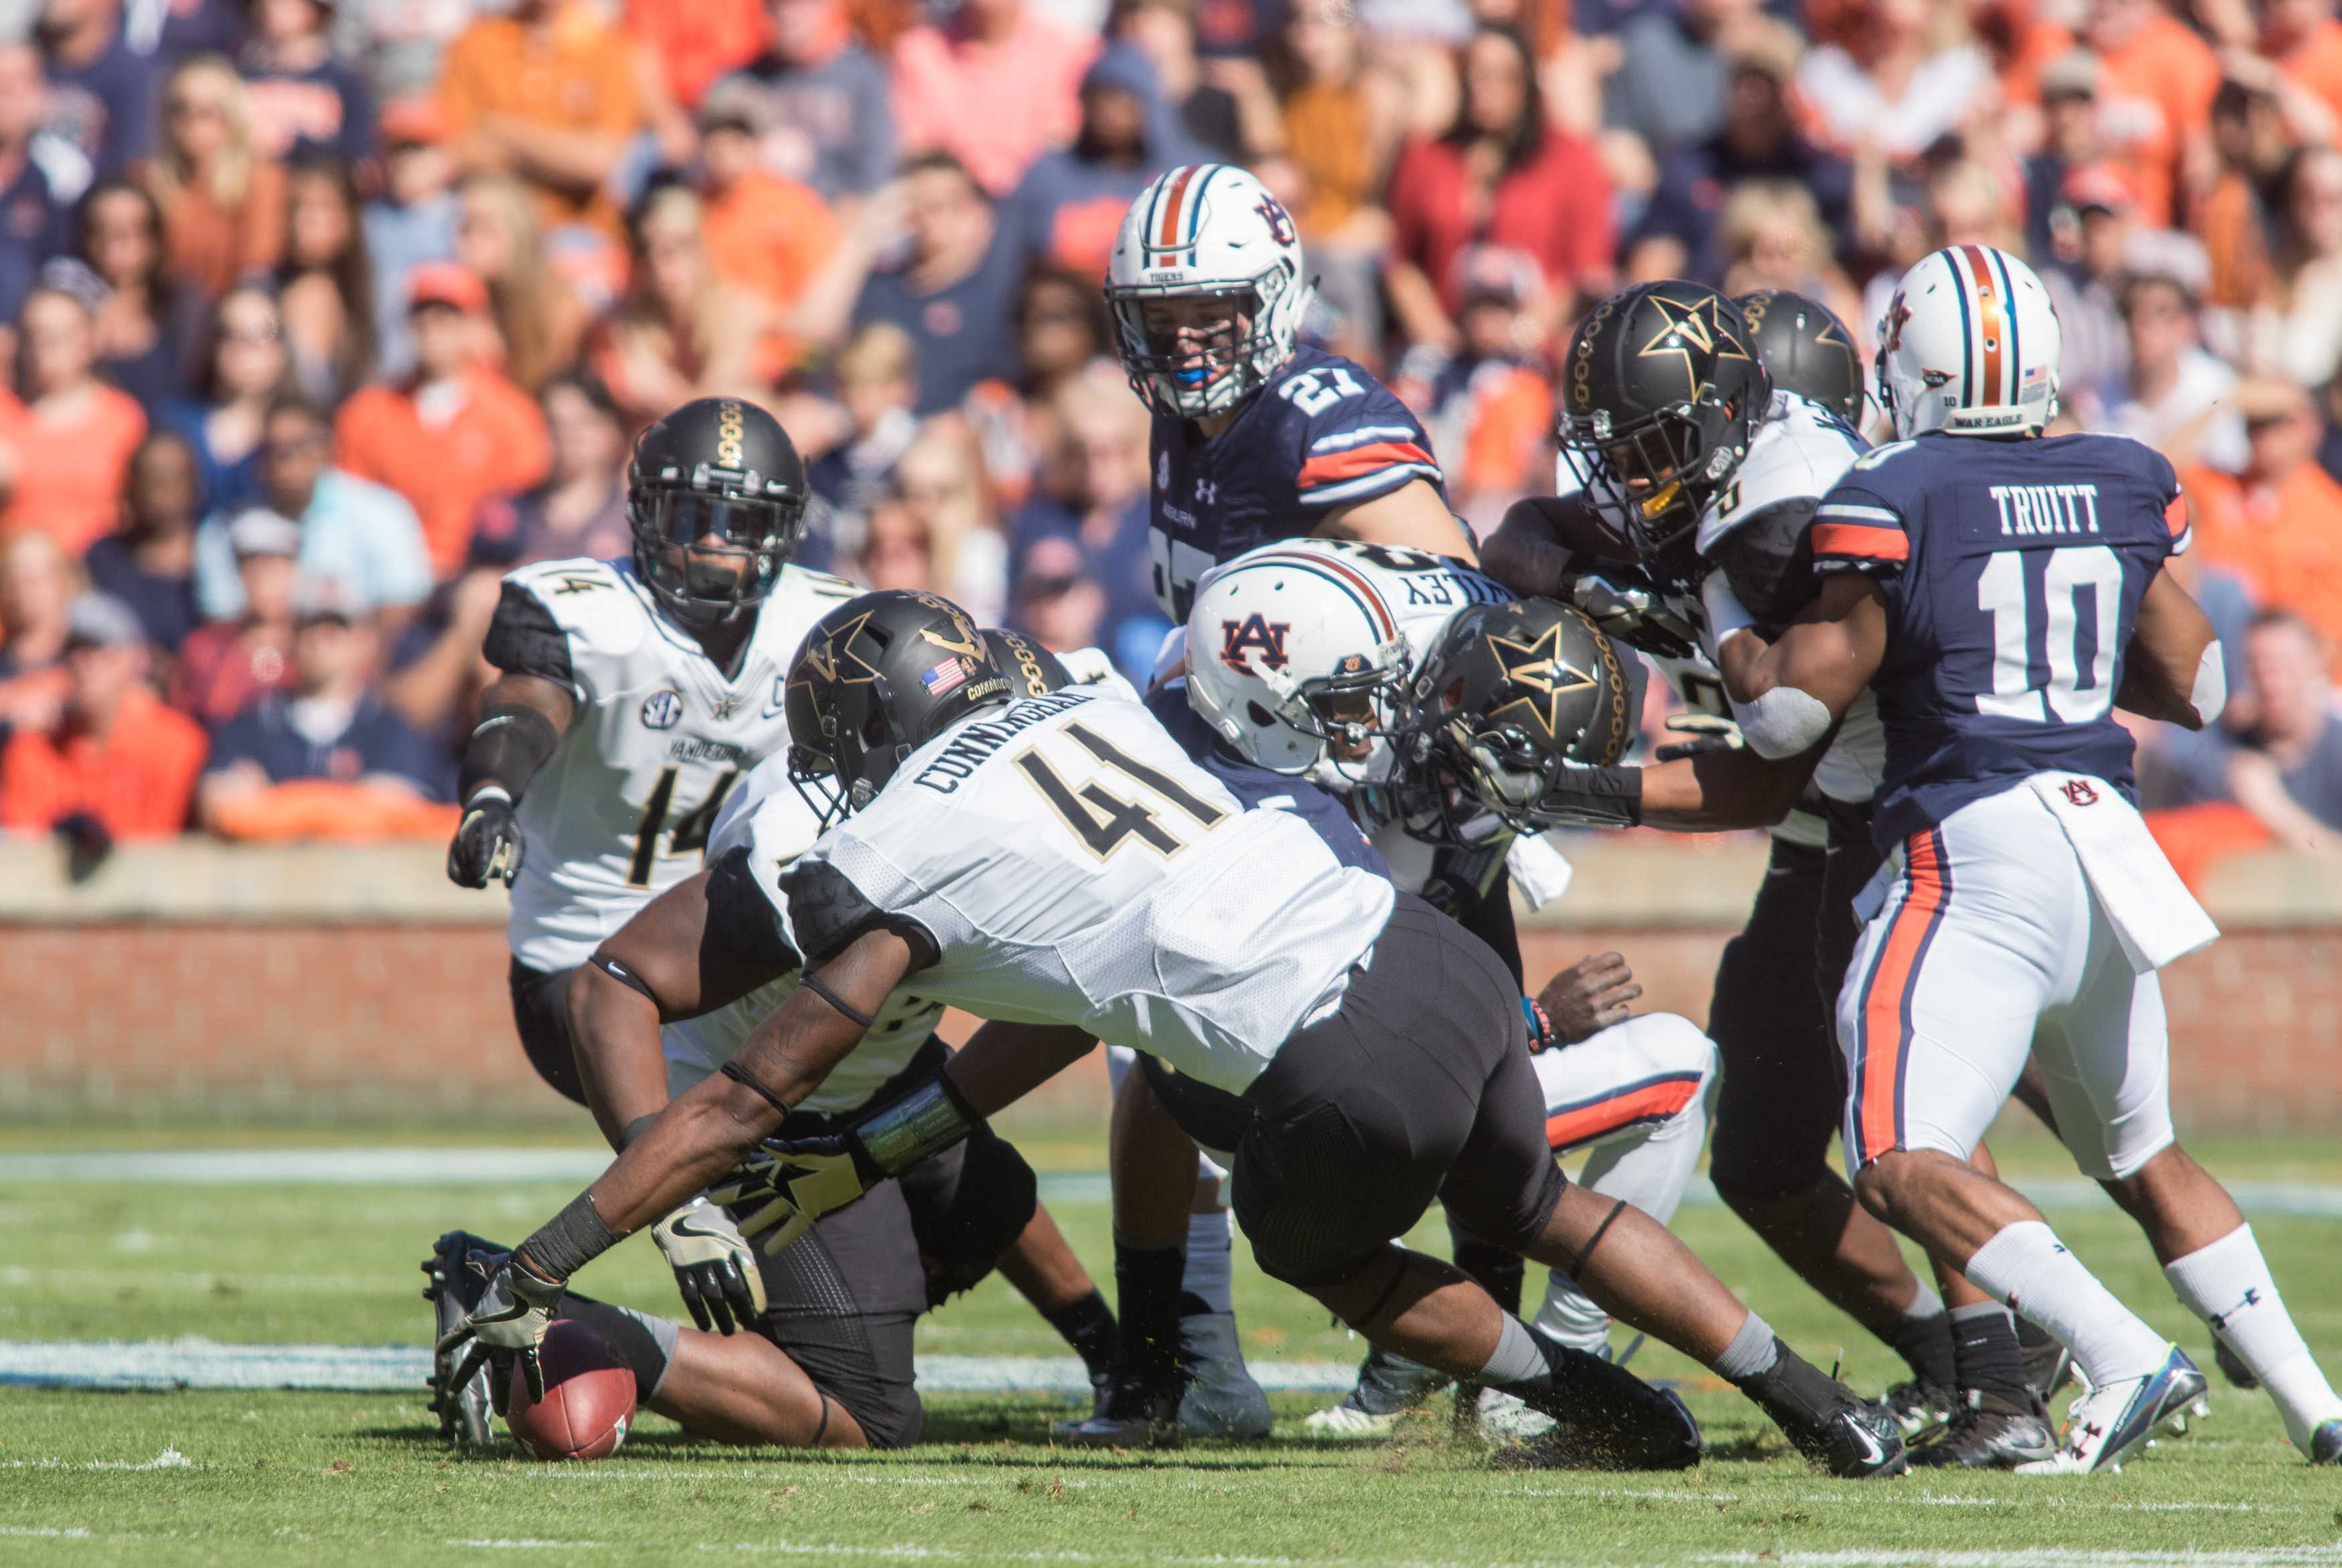 Zach Cunningham (41) recovers a fumble as Vanderbilt faced the Auburn Tigers at Jordan Hare Stadium Auburn, Al November 4, 2016. (Ziyi Liu/ The Vanderbilt Hustler)